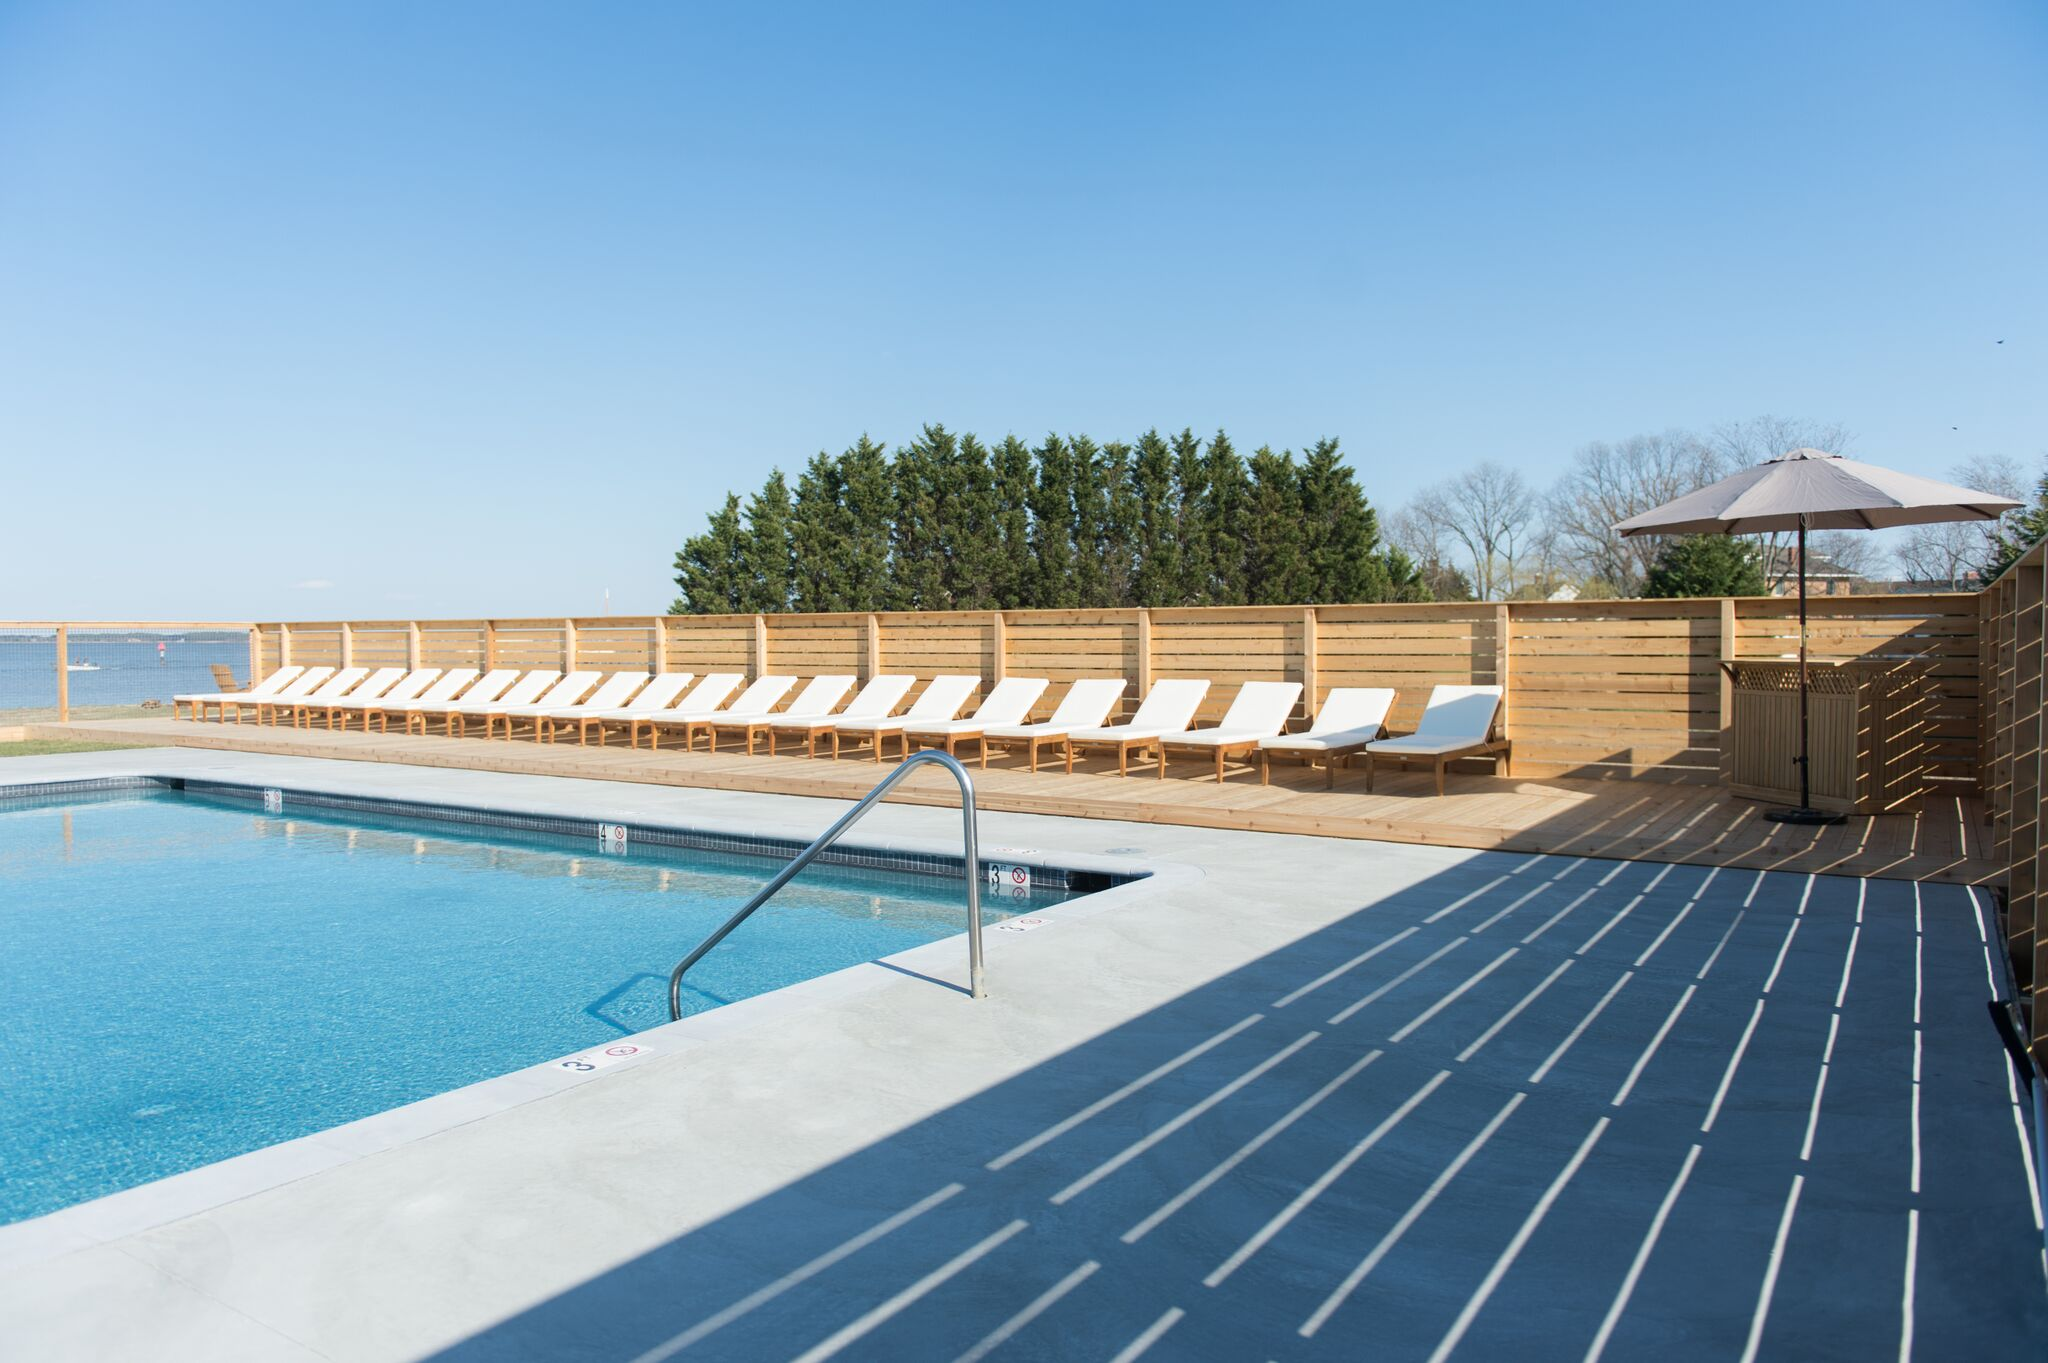 The resort features a saltwater pool overlooking the Chesapeake Bay (Image: Wylder Hotel)